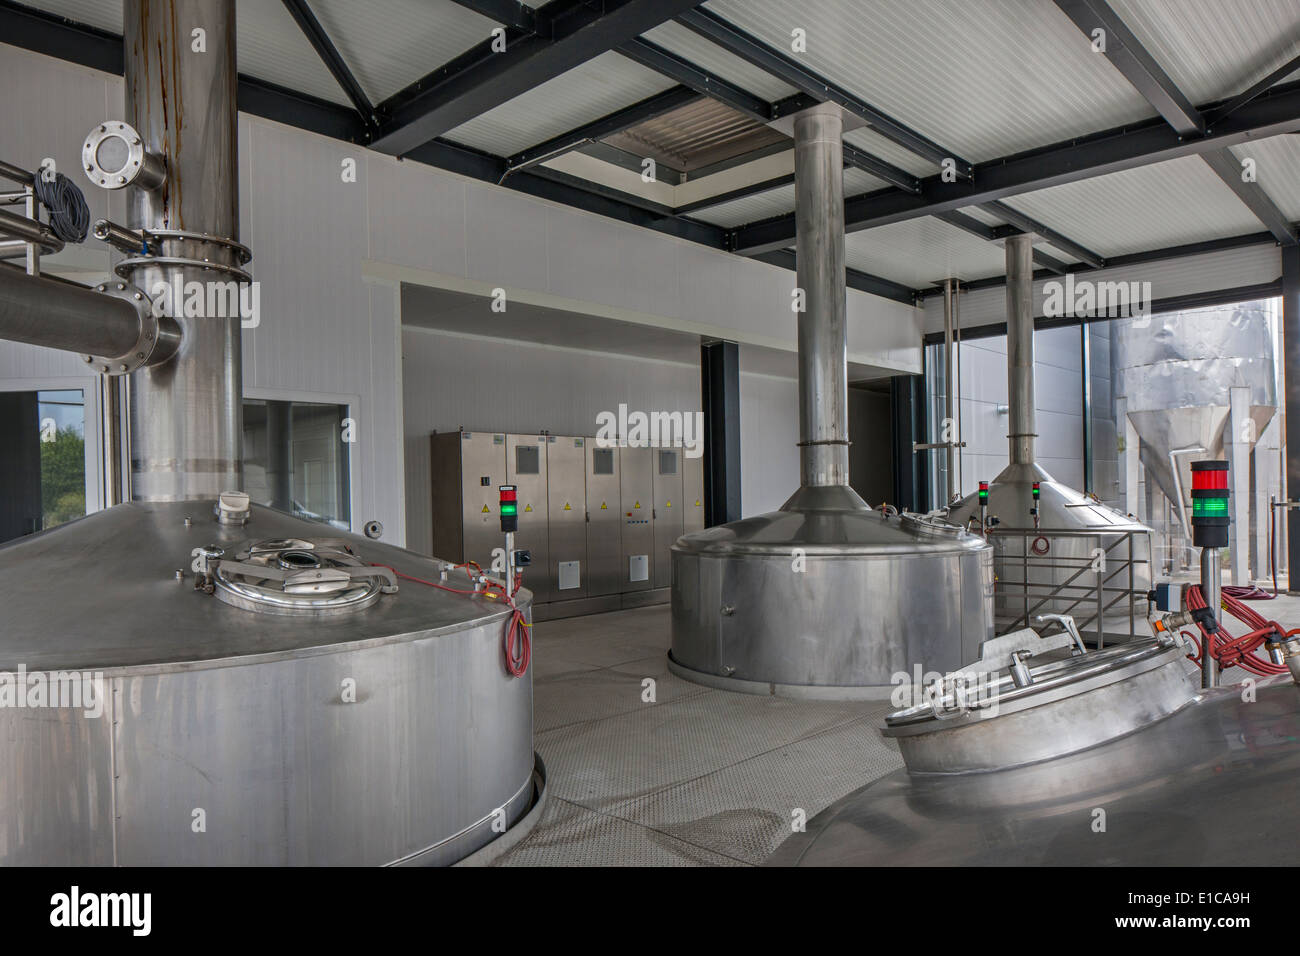 Brew kettles at Brouwerij Boon, Belgian brewery at Lembeek near Brussels, producer of geuze and kriek beer - Stock Image